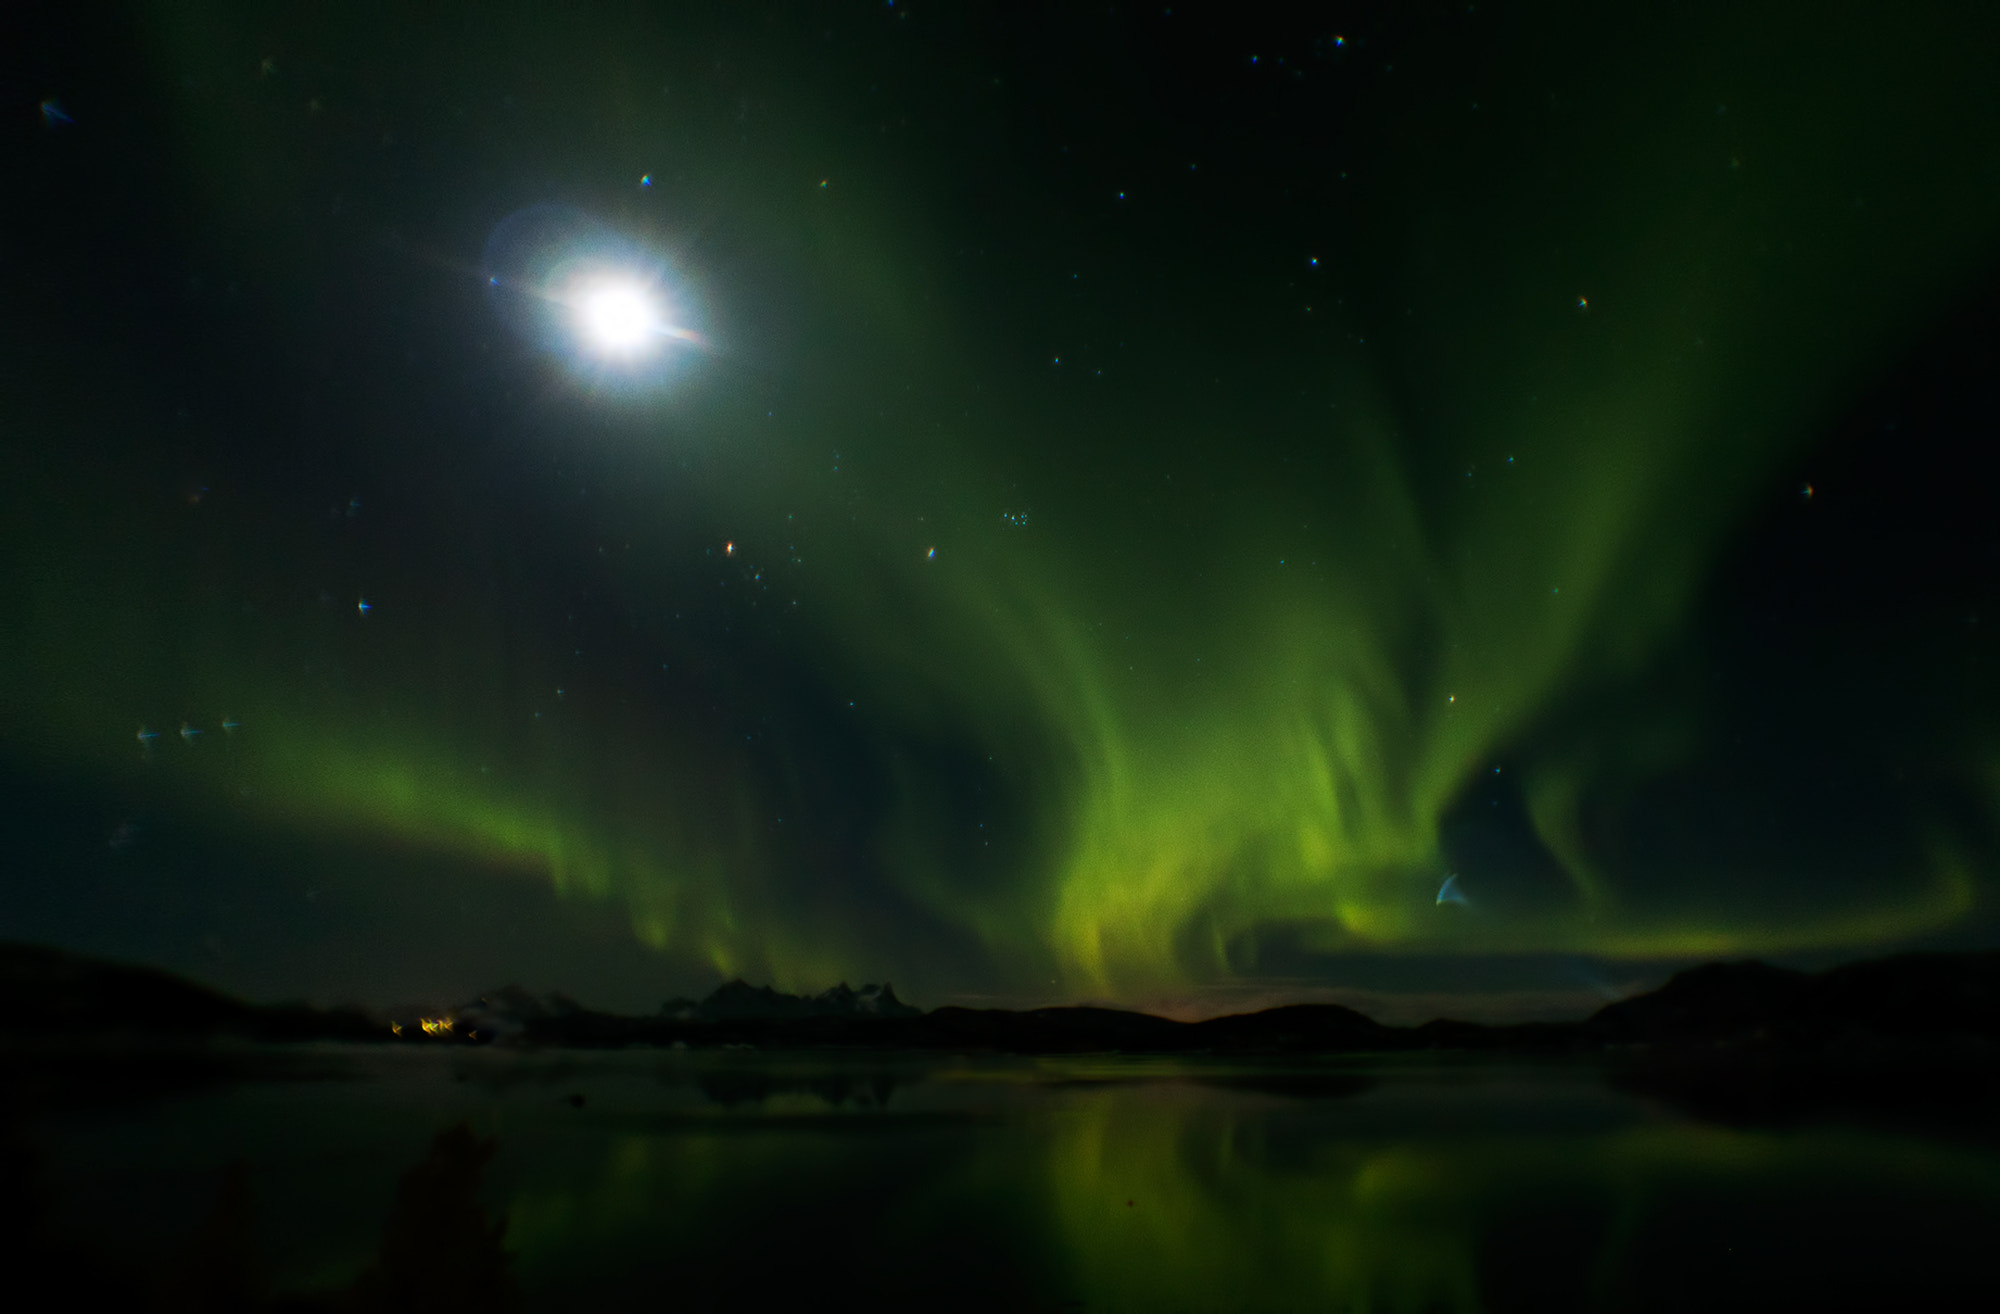 Photograph Lightshow by Morten  Aspaas on 500px